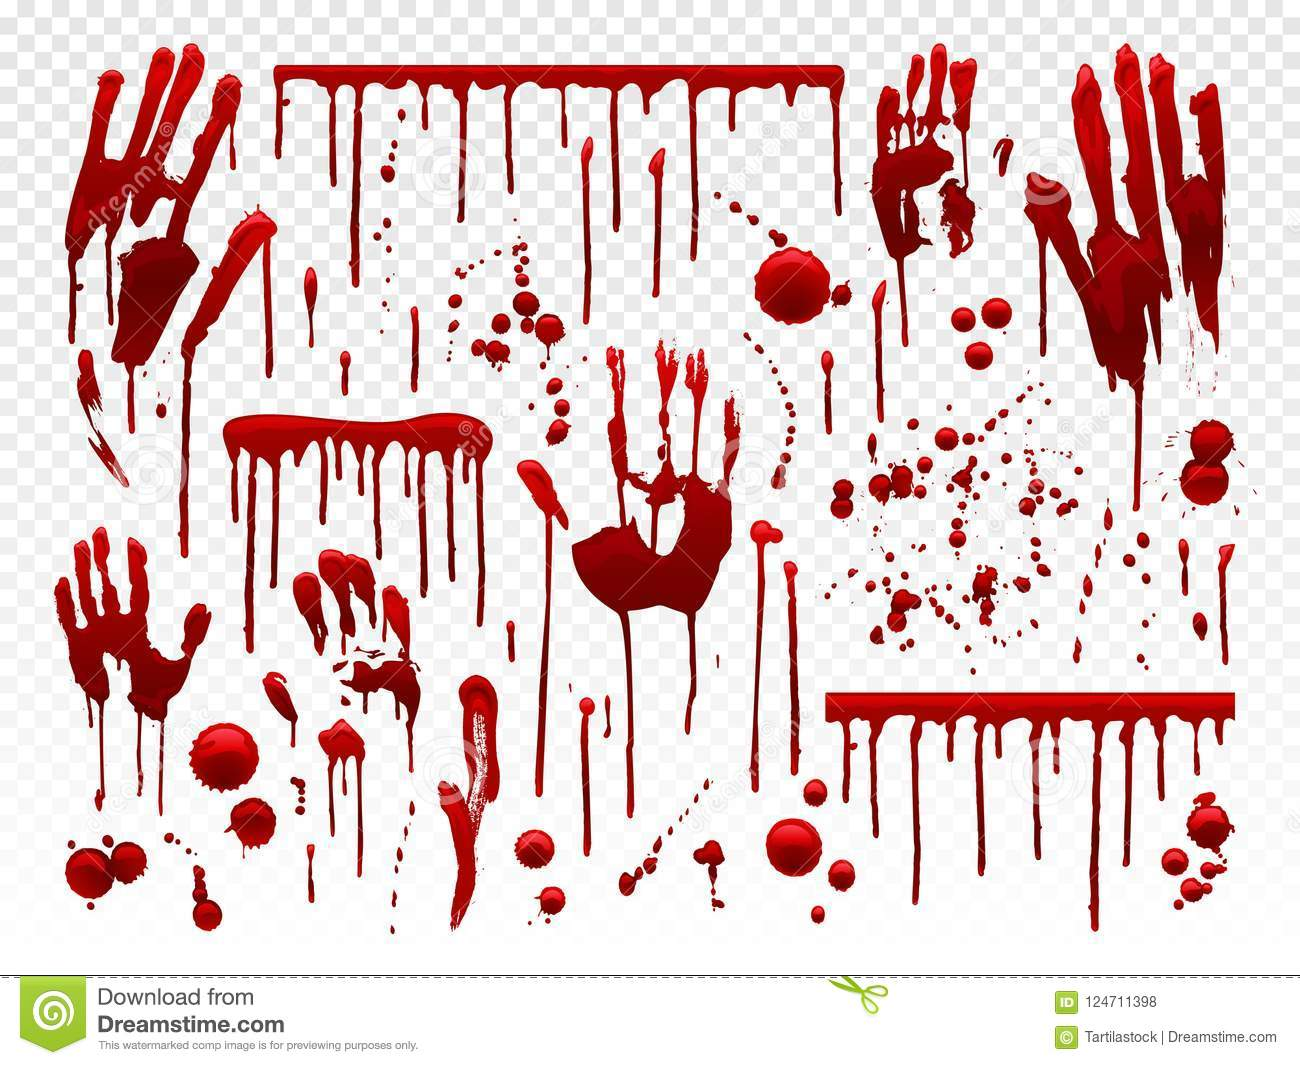 Blood Texture Stock Illustrations 15 167 Blood Texture Stock Illustrations Vectors Clipart Dreamstime Choose from over a million free vectors, clipart graphics, vector art images, design templates, and illustrations created by artists worldwide! https www dreamstime com blood drip red paint splash halloween bloody splatter spots bleeding hand traces dripping bloods horror texture mess murder image124711398